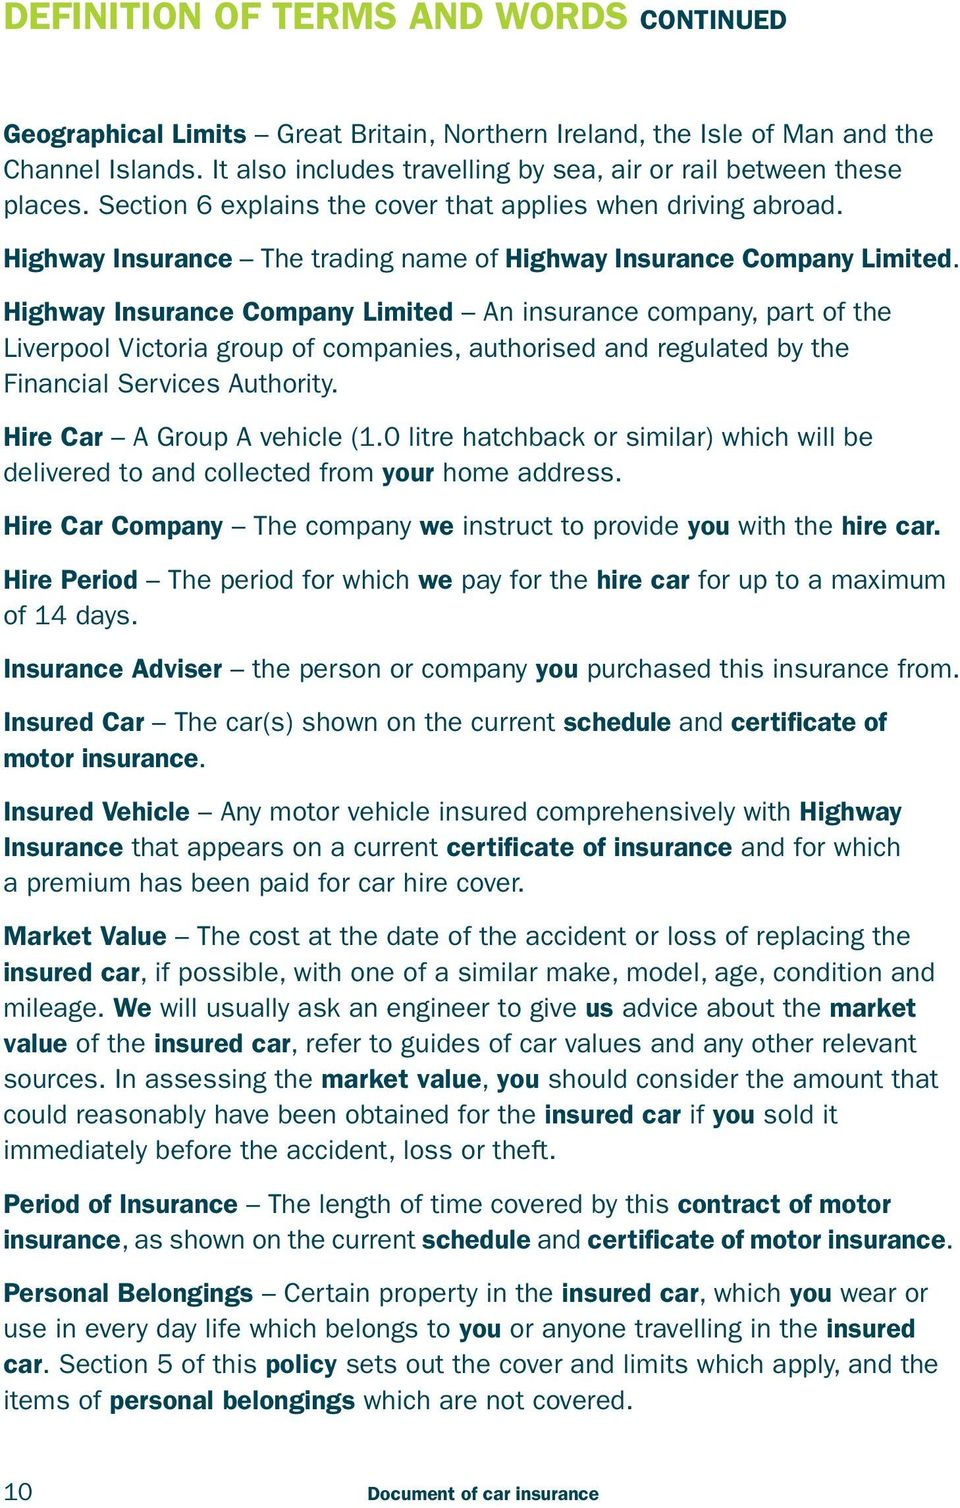 Highway Isurace Compay Limited A isurace compay, part of the Liverpool Victoria group of compaies, authorised ad regulated by the Fiacial Services Authority. Hire Car A Group A vehicle (1.